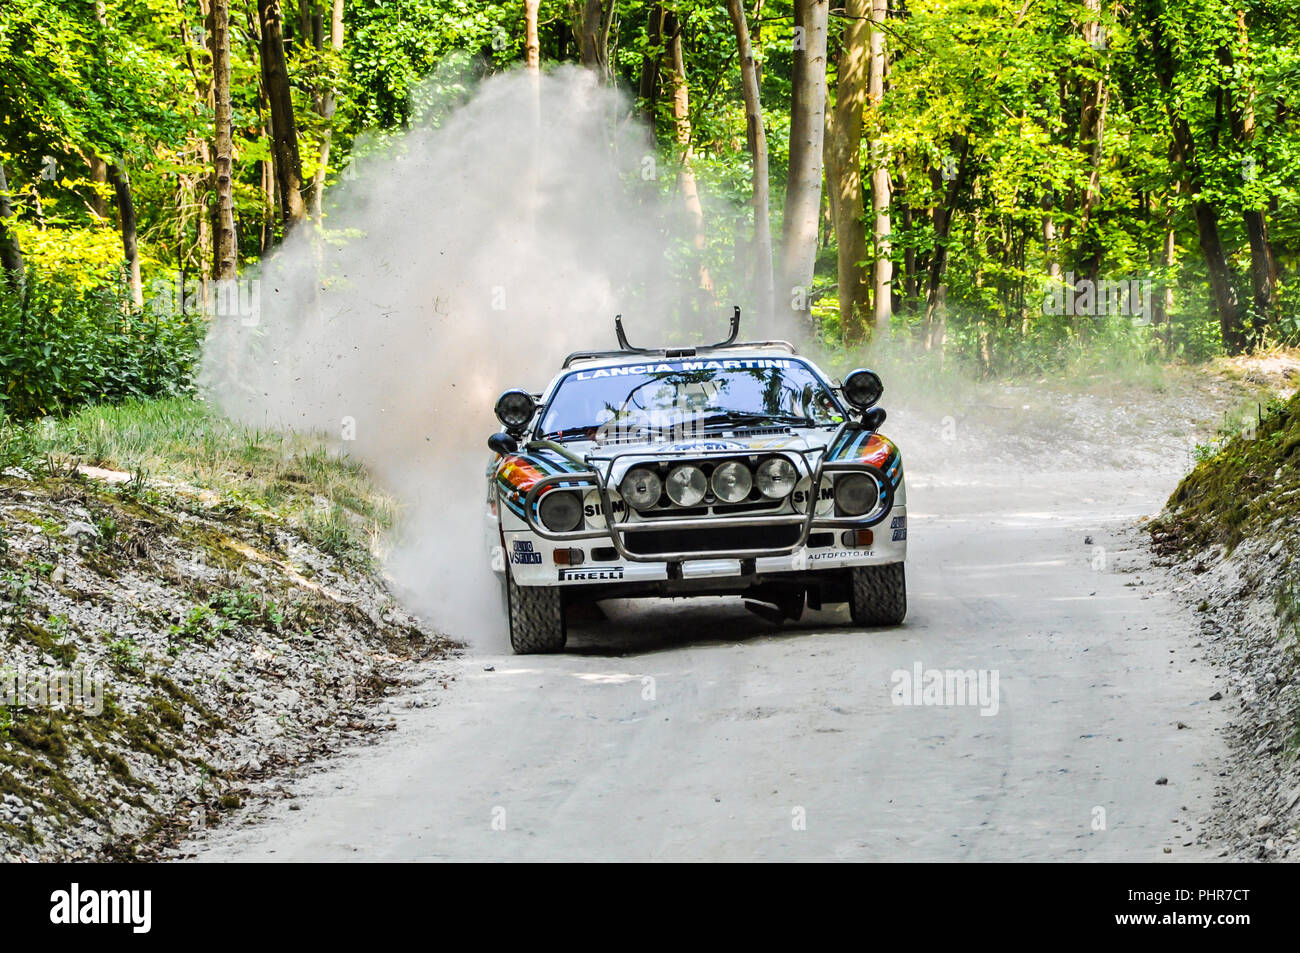 1983 MARTINI Racing Lancia 037 on the Forest Rally Stage at the Goodwood Festival of Speed. Classic rally car kicking up dust on stage - Stock Image